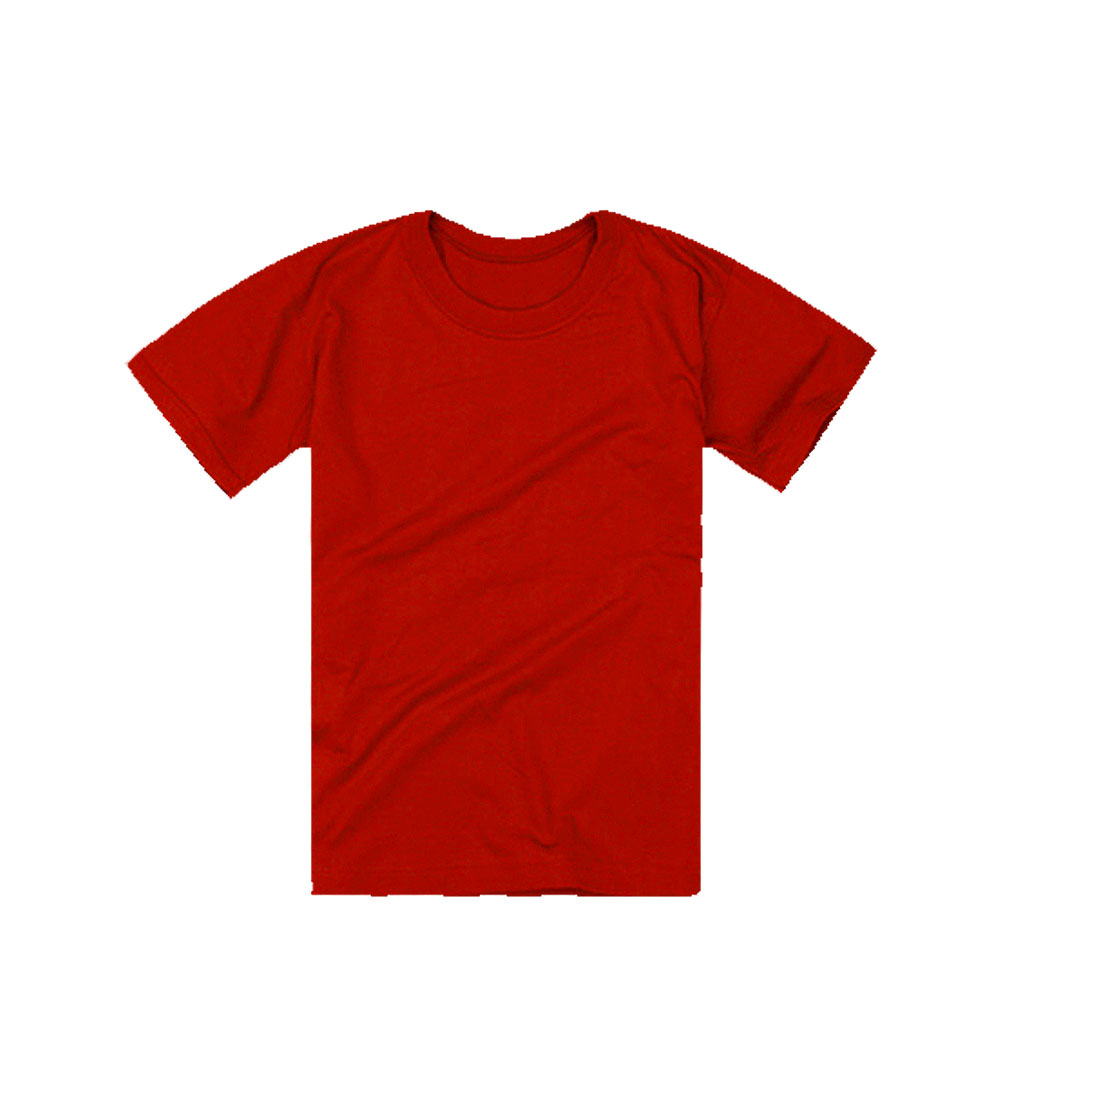 Men Round Neck Stretchy Style Short Sleeve Design Summer Tee Shirt M Red